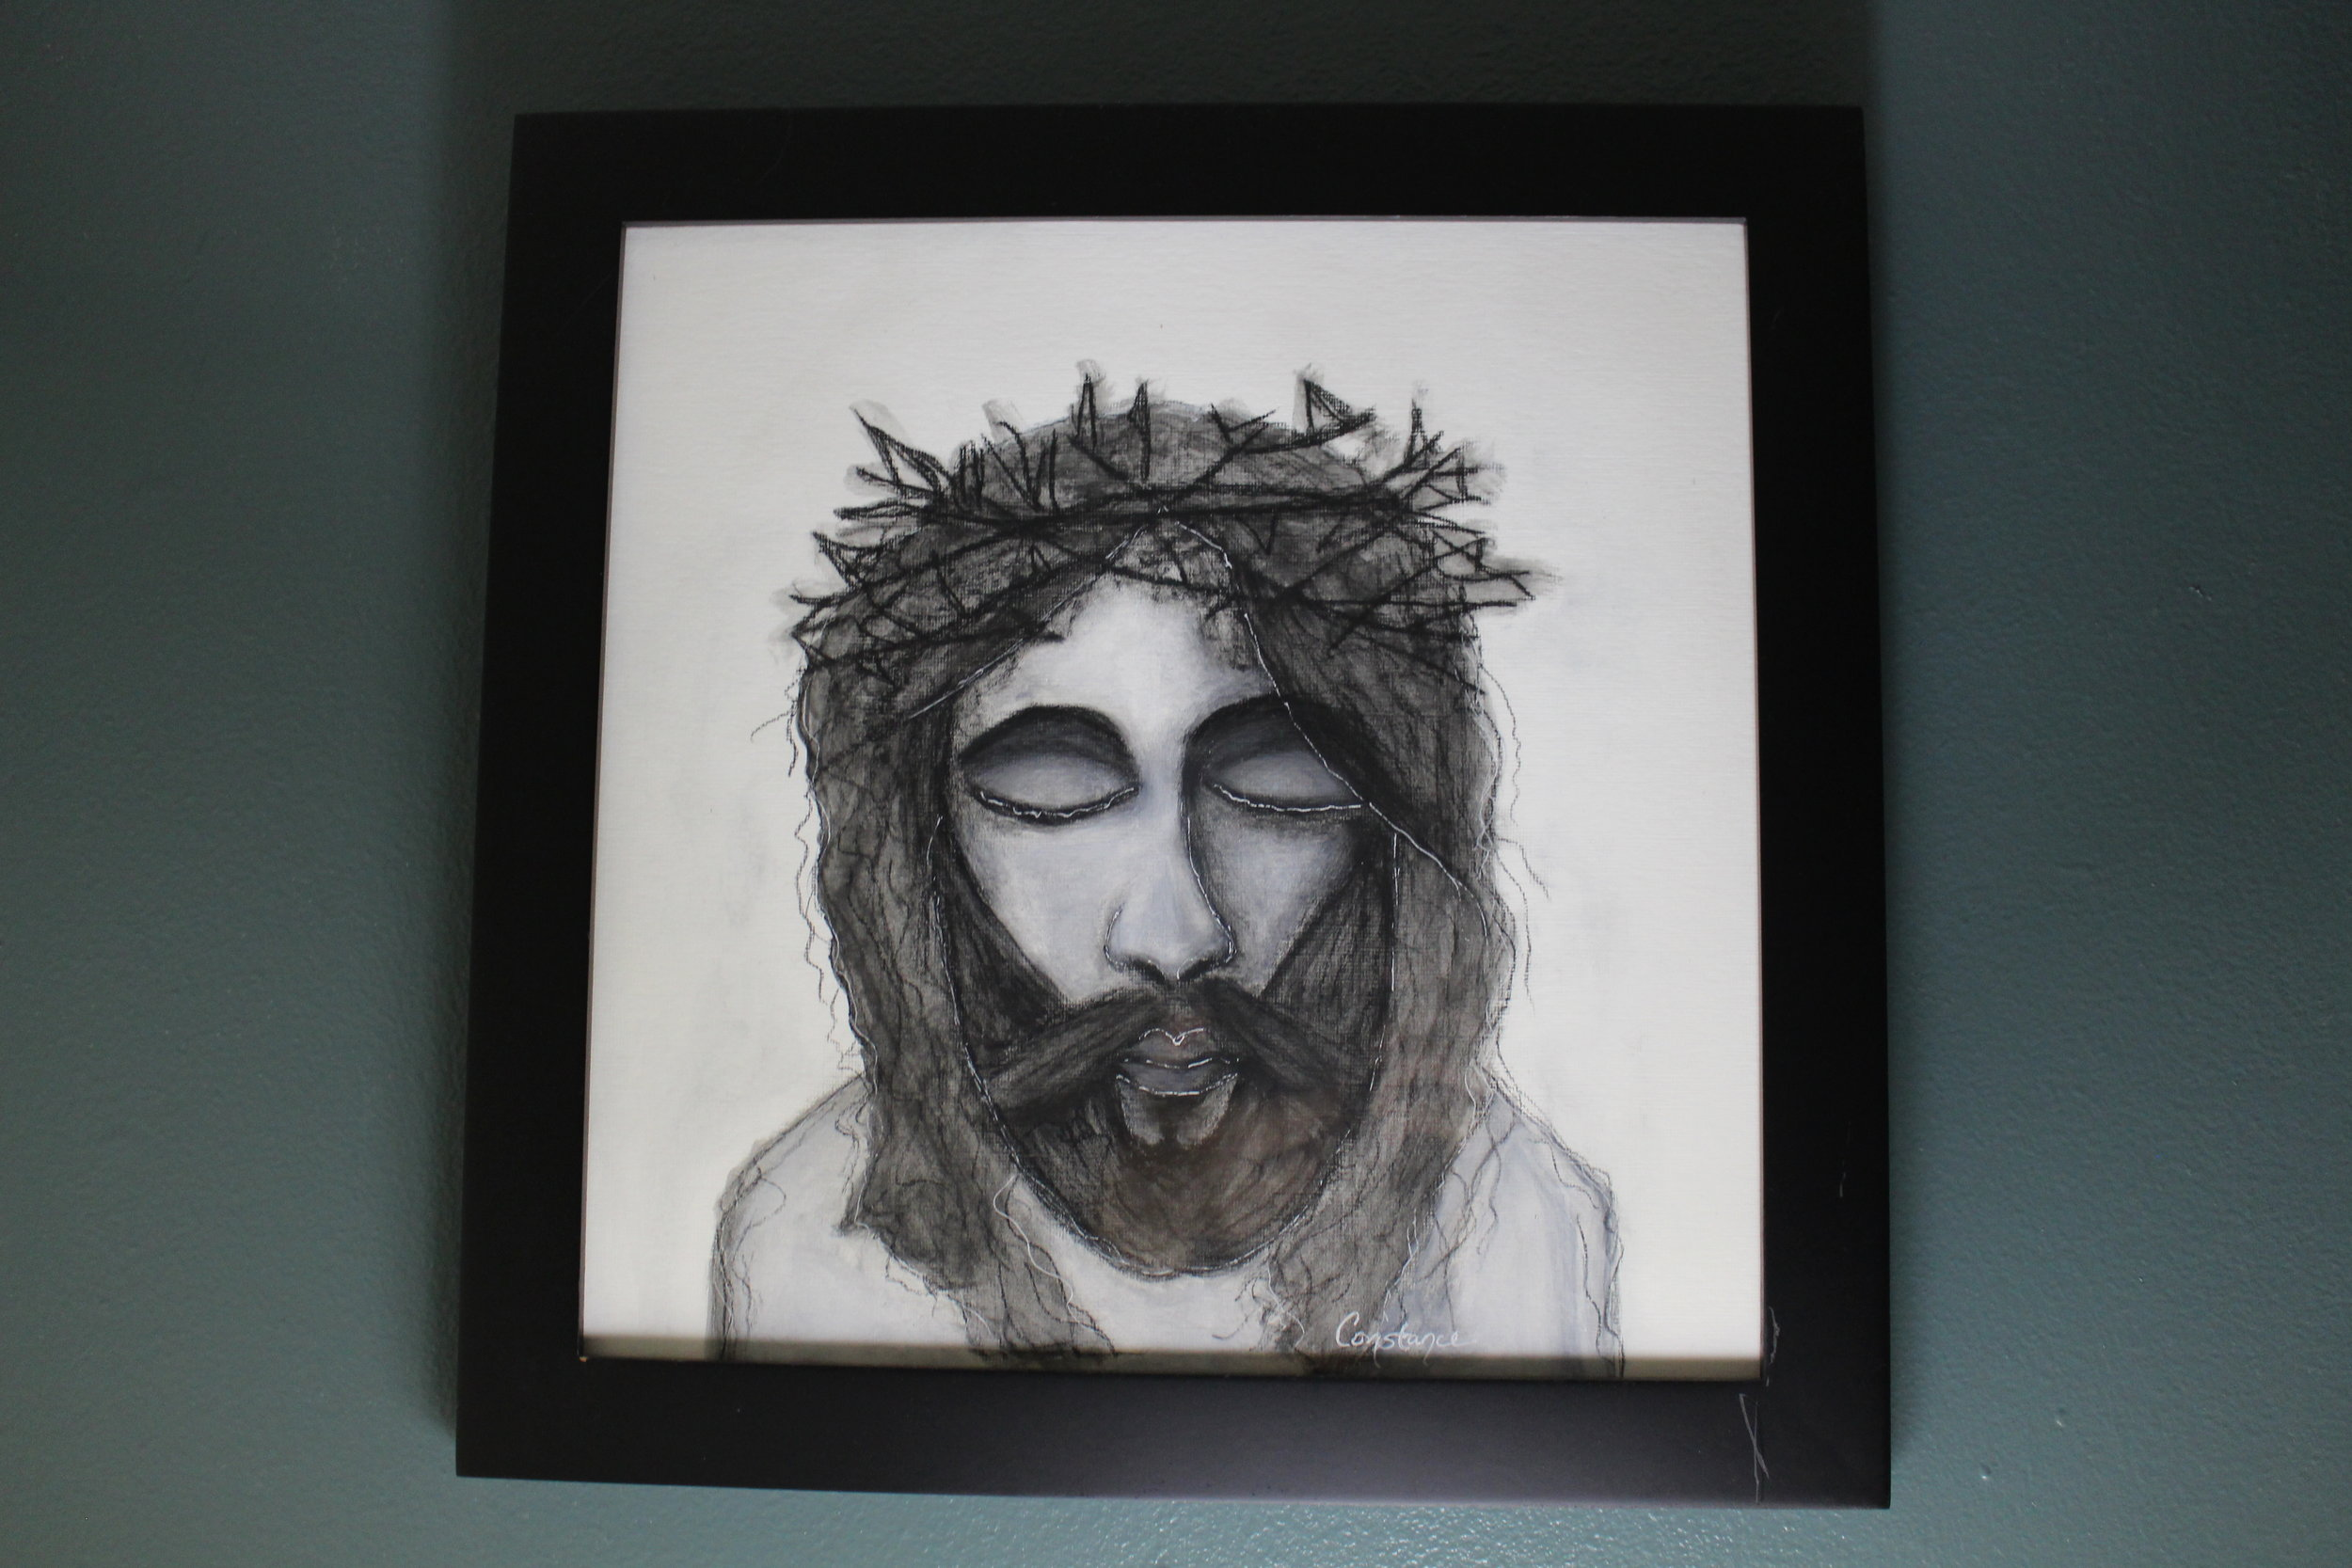 Portrait of Jesus #1 by Constance Reeder Art